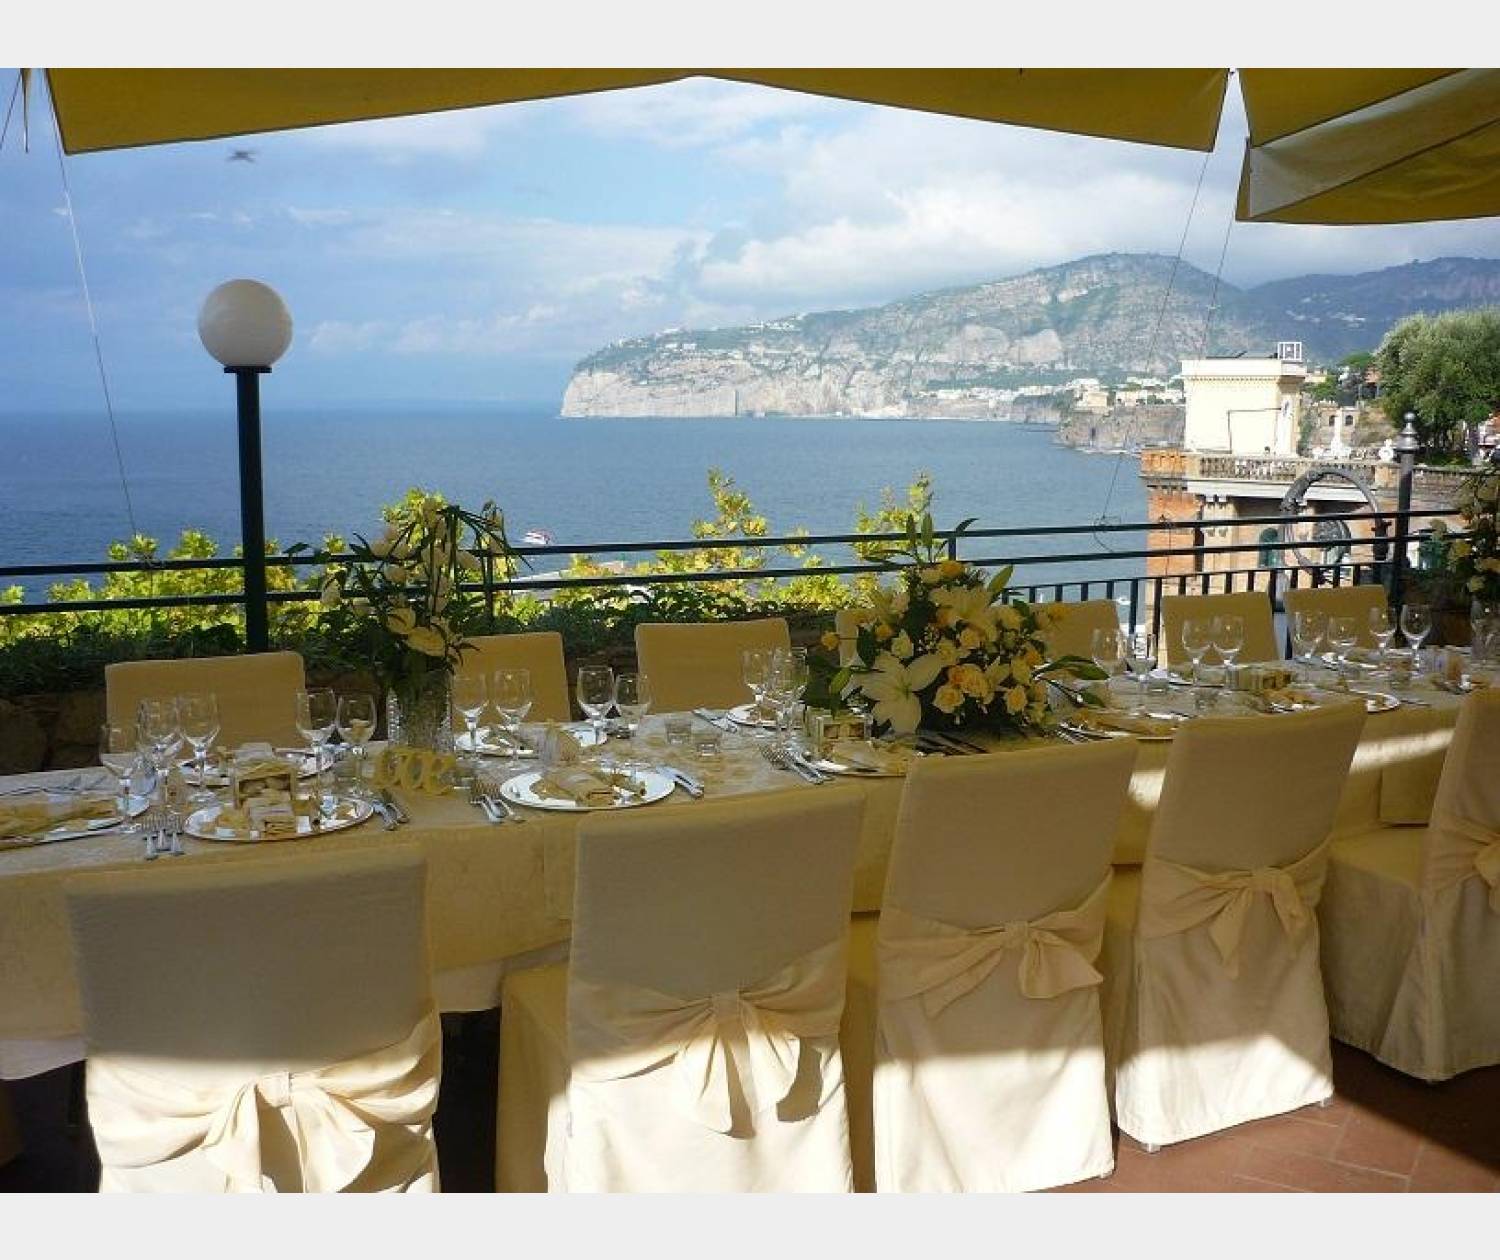 DREAM WEDDINGS in ITALY!